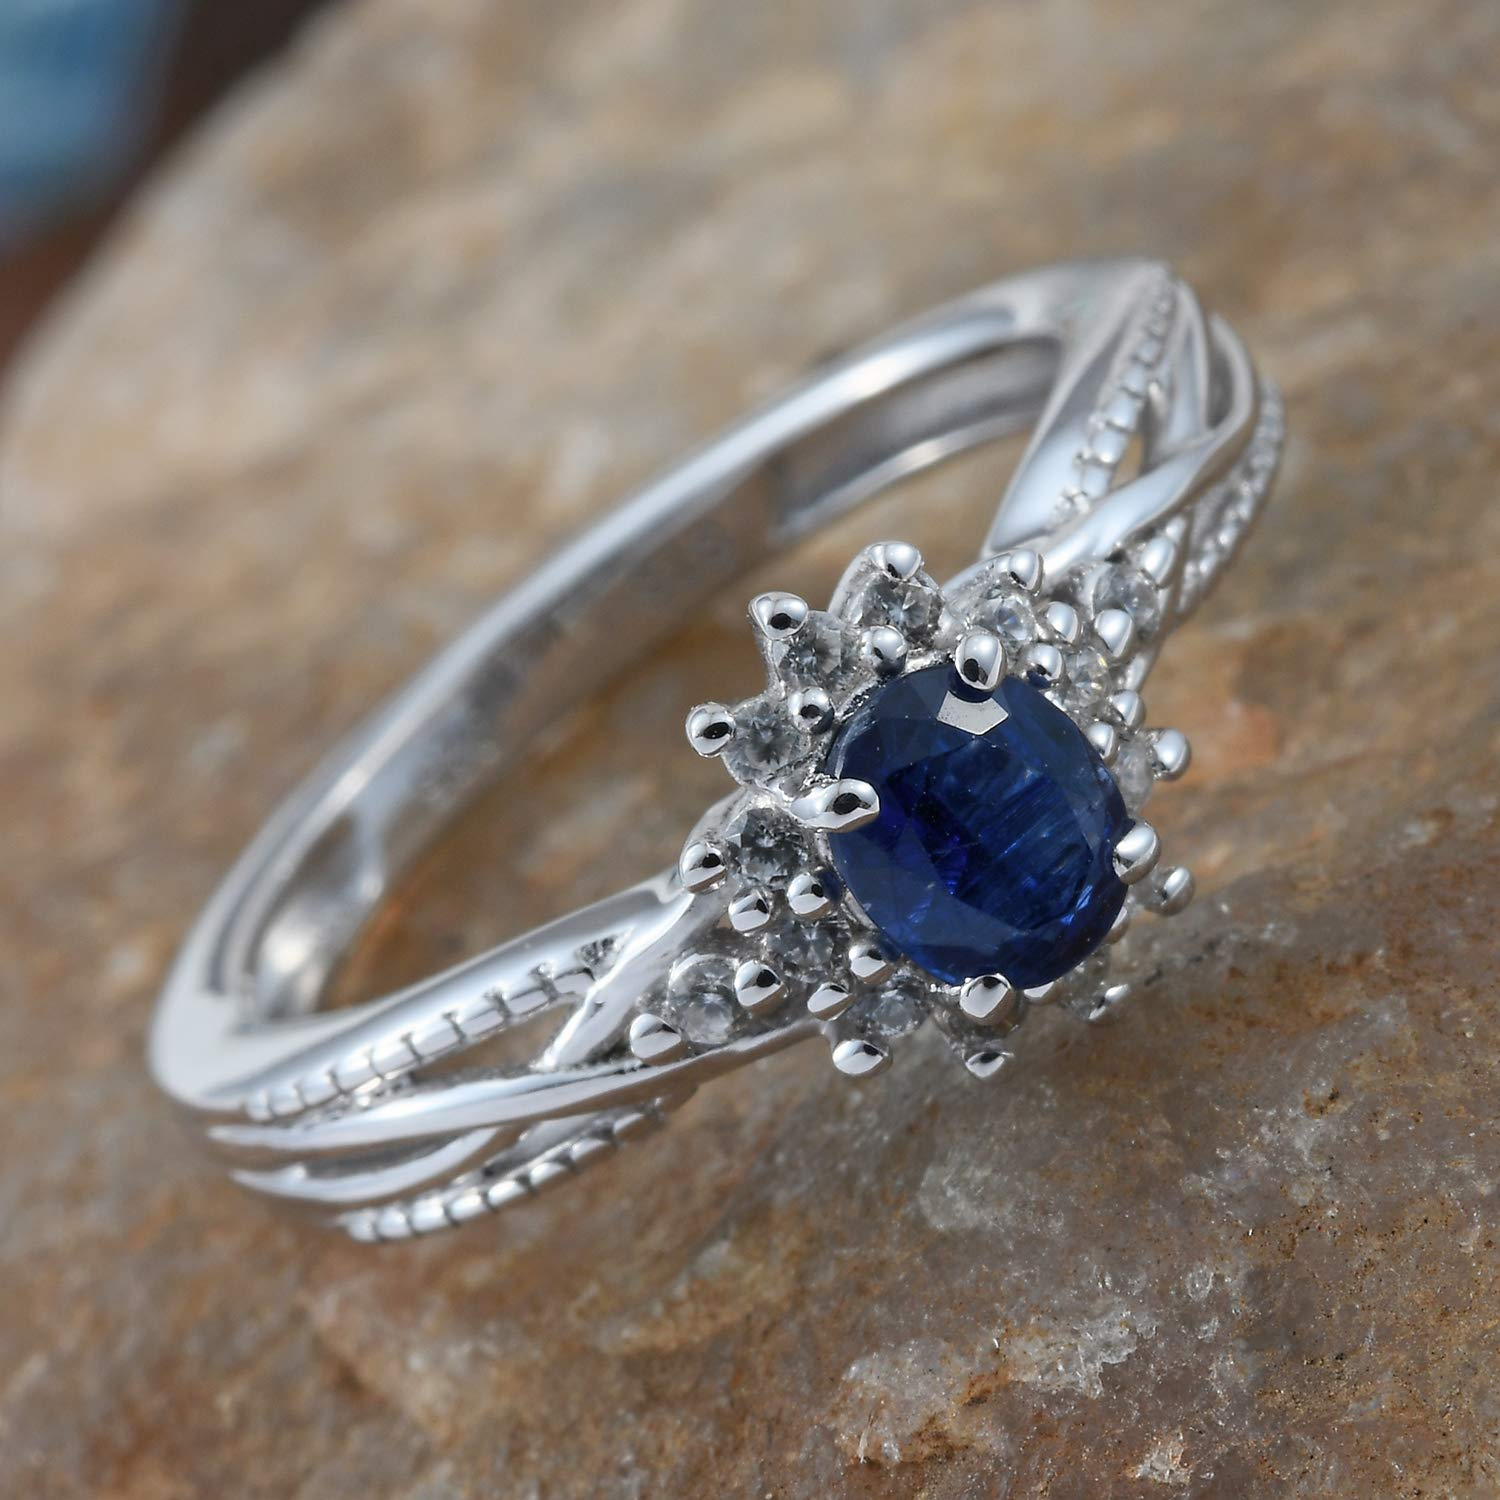 Statement Ring 925 Sterling Silver Platinum Plated Kyanite Zircon Jewelry for Women Size 7 Ct 0.5